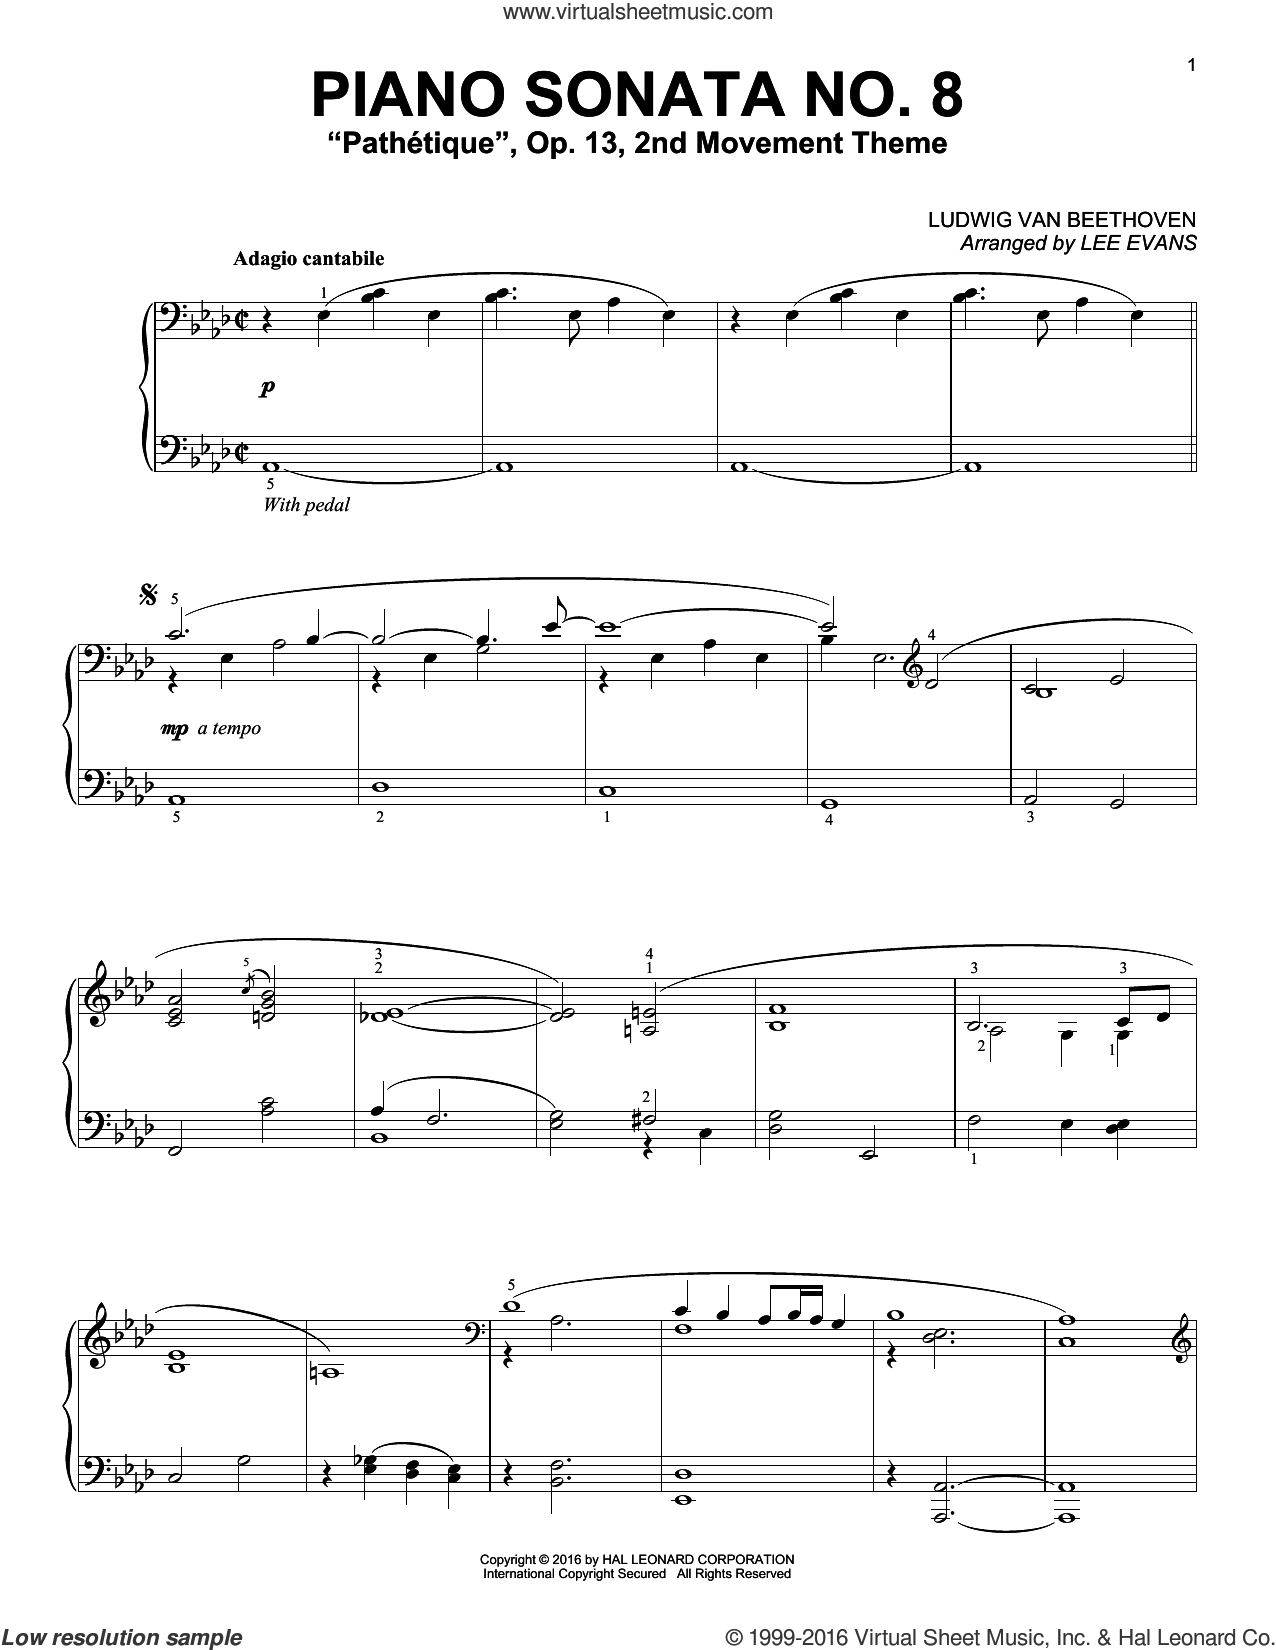 Piano Sonata No. 8, Op. 13 ('Pathetique'), 2nd Movement sheet music for piano solo by Ludwig van Beethoven and Lee Evans, classical score, intermediate skill level